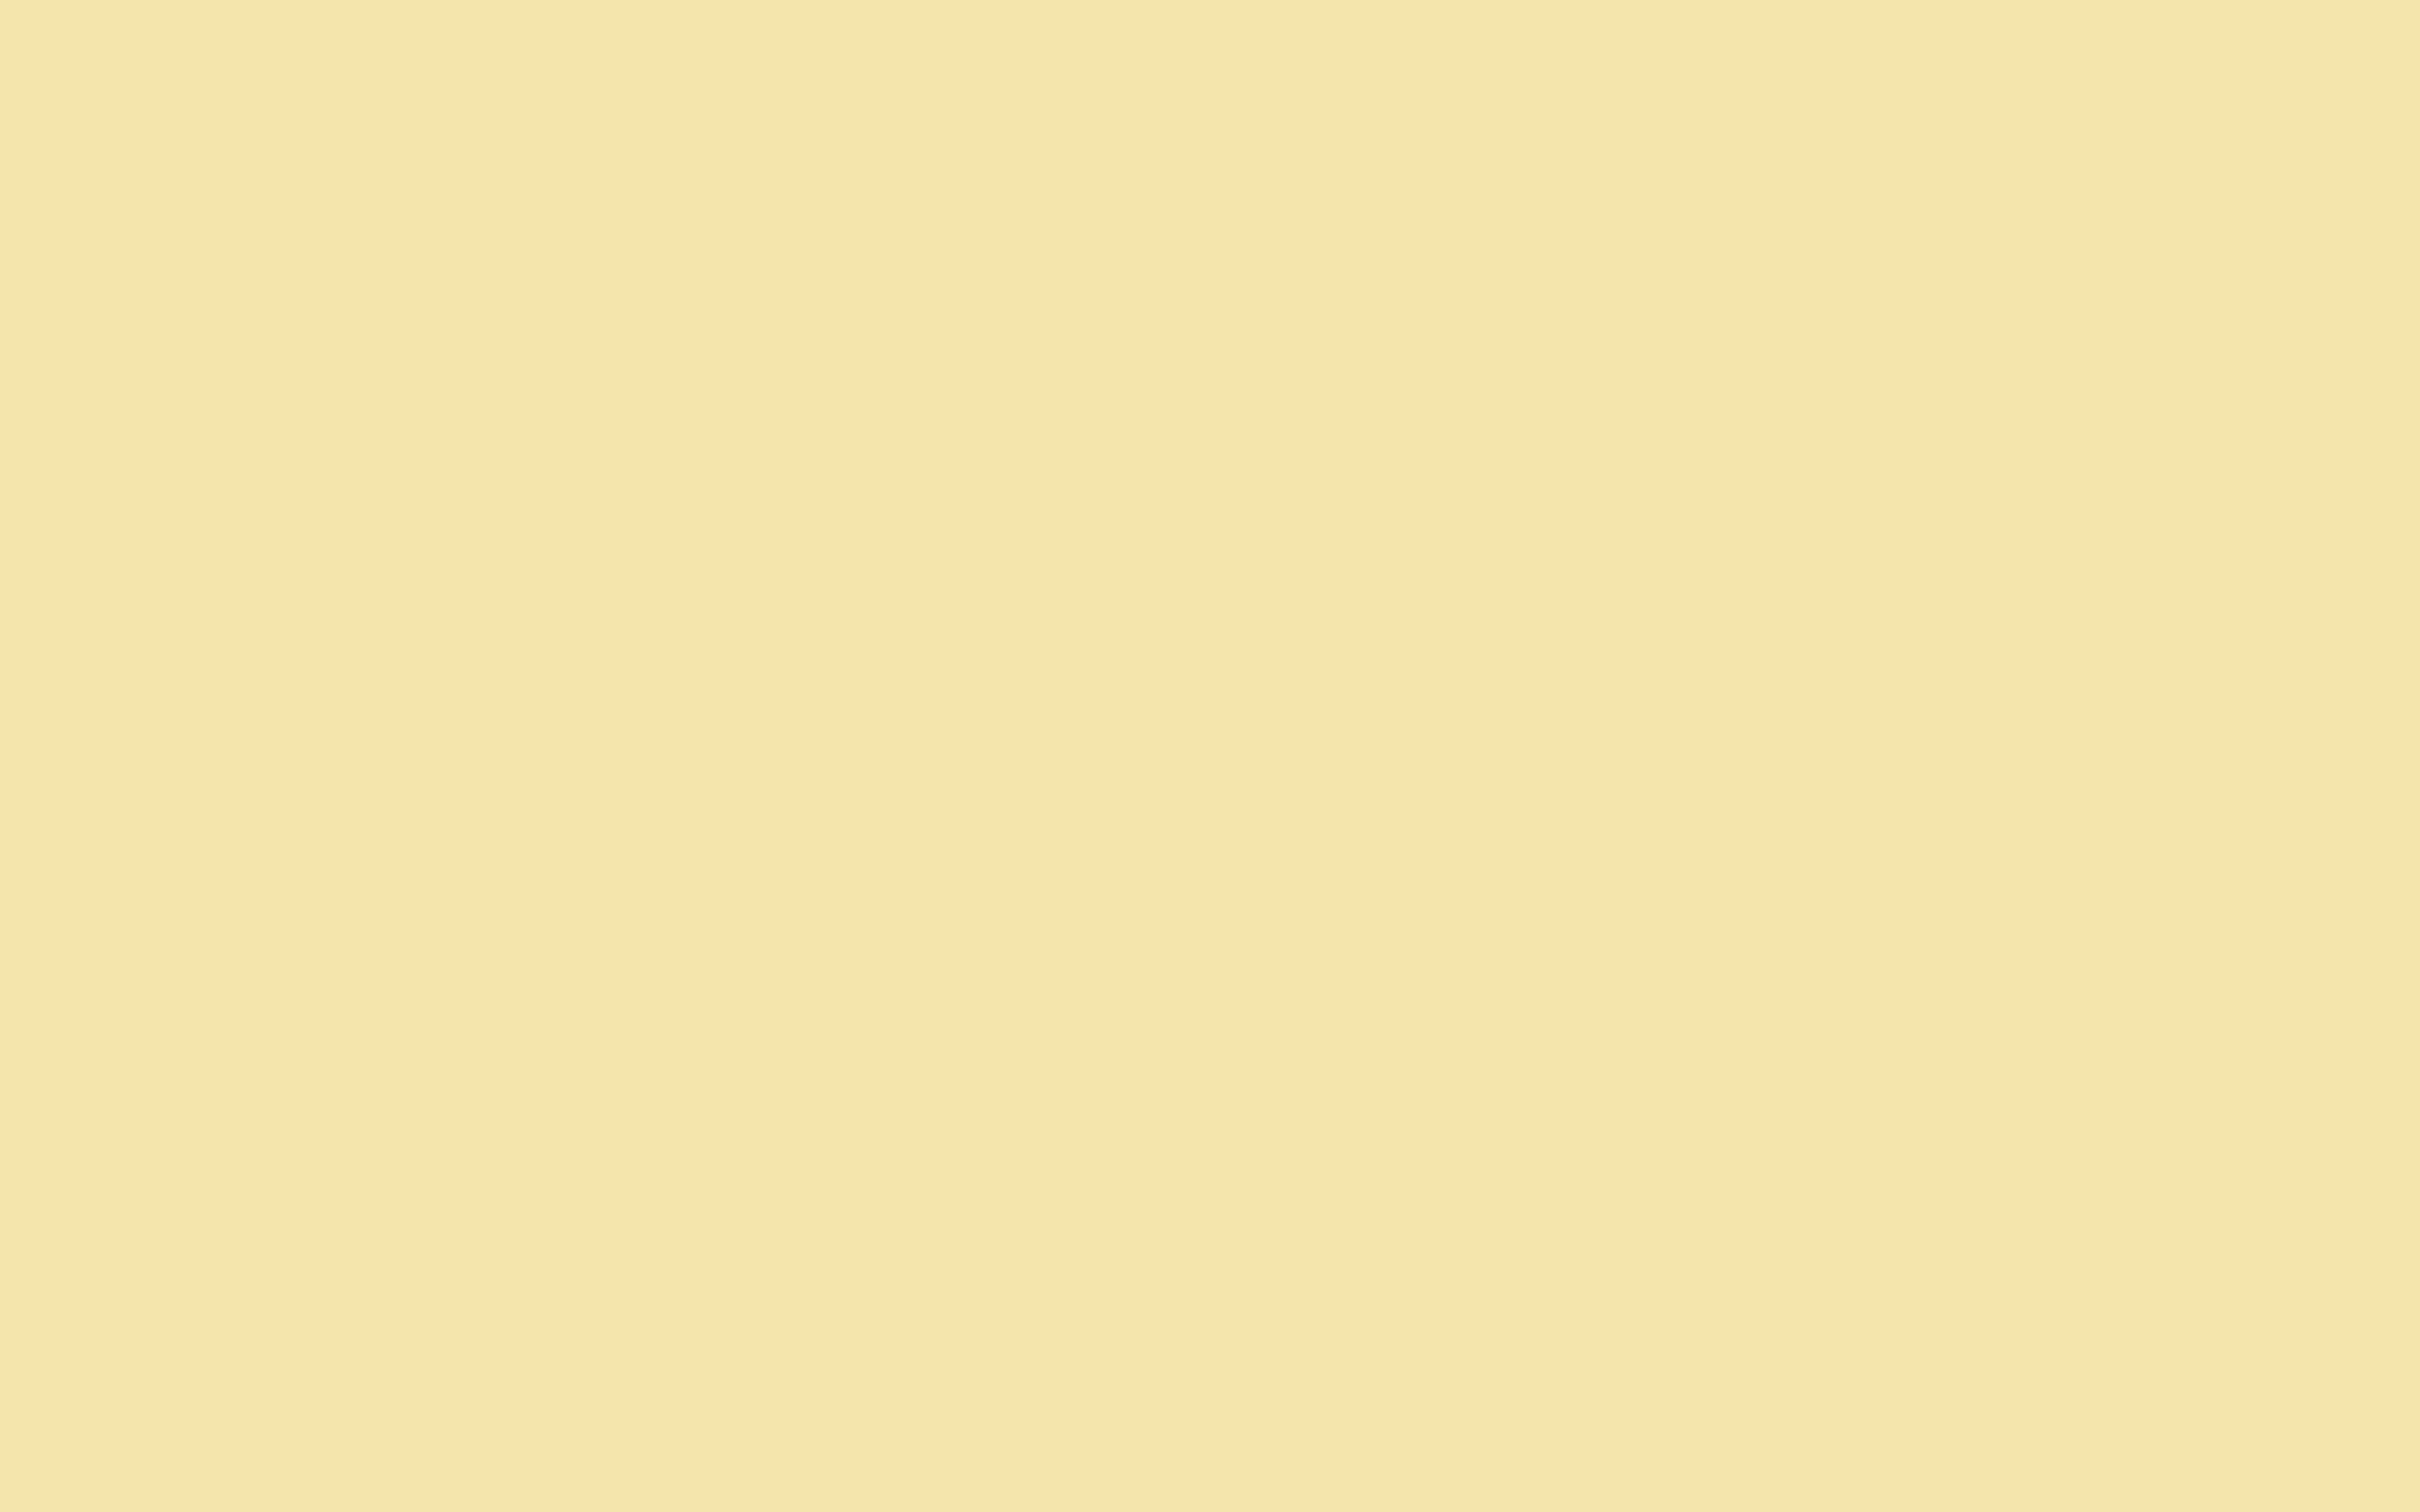 2560x1600 Medium Champagne Solid Color Background